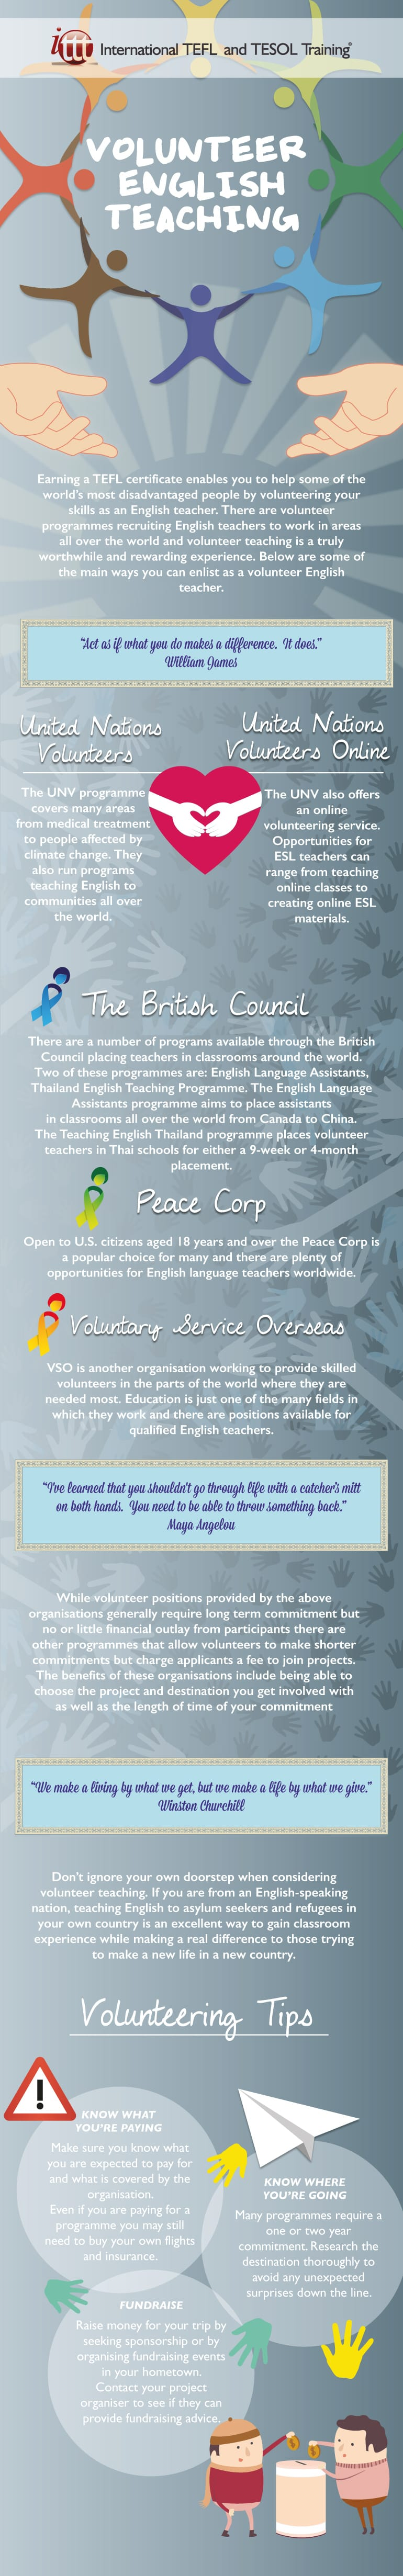 Infographic Volunteer English Teaching